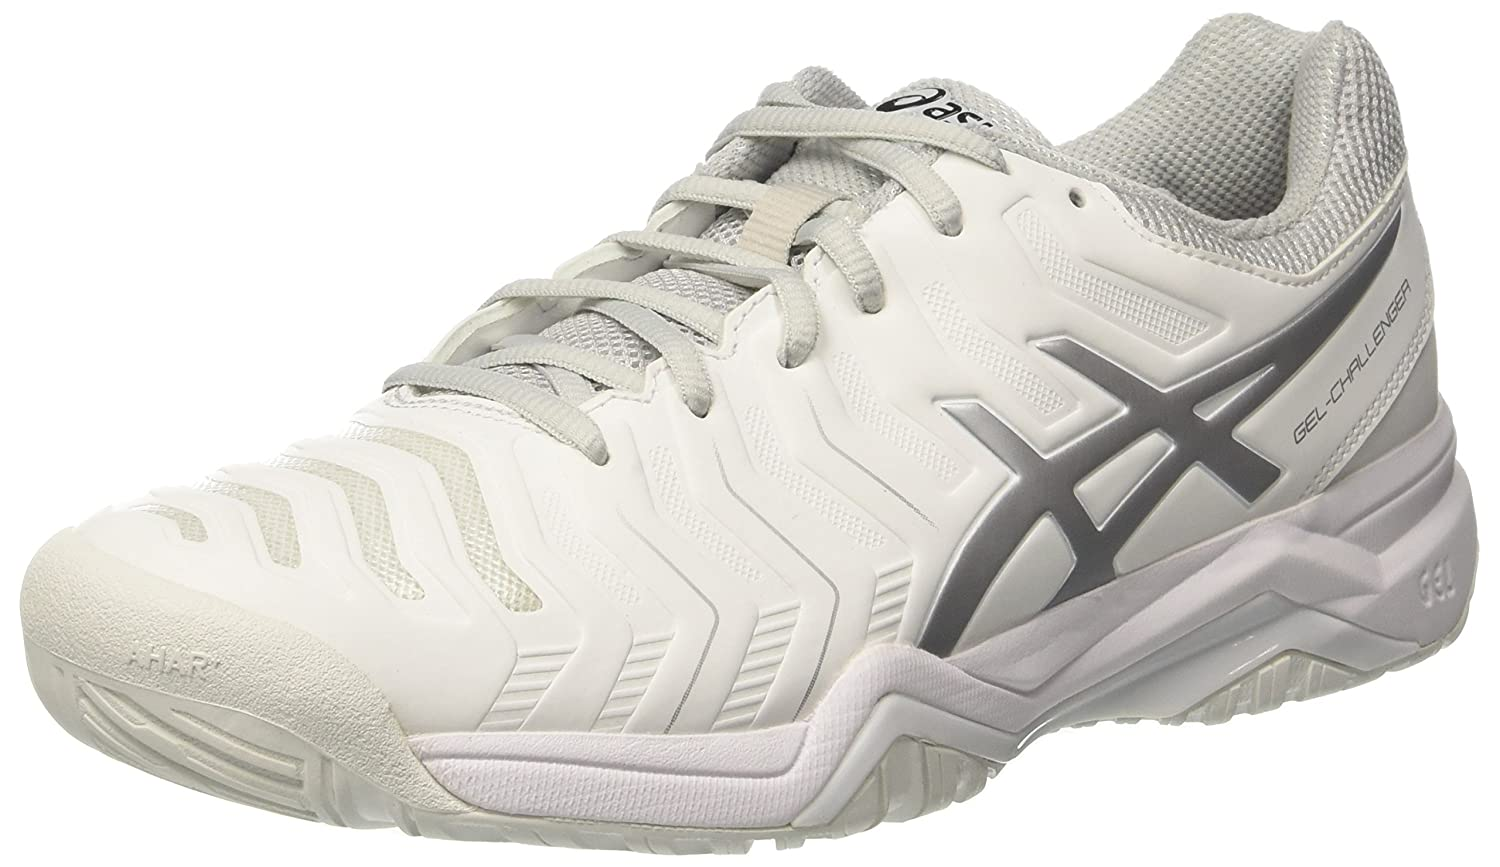 design intemporel eeccb ba0db ASICS Gel-Challenger 11, Men's Trainers: Amazon.co.uk: Shoes ...